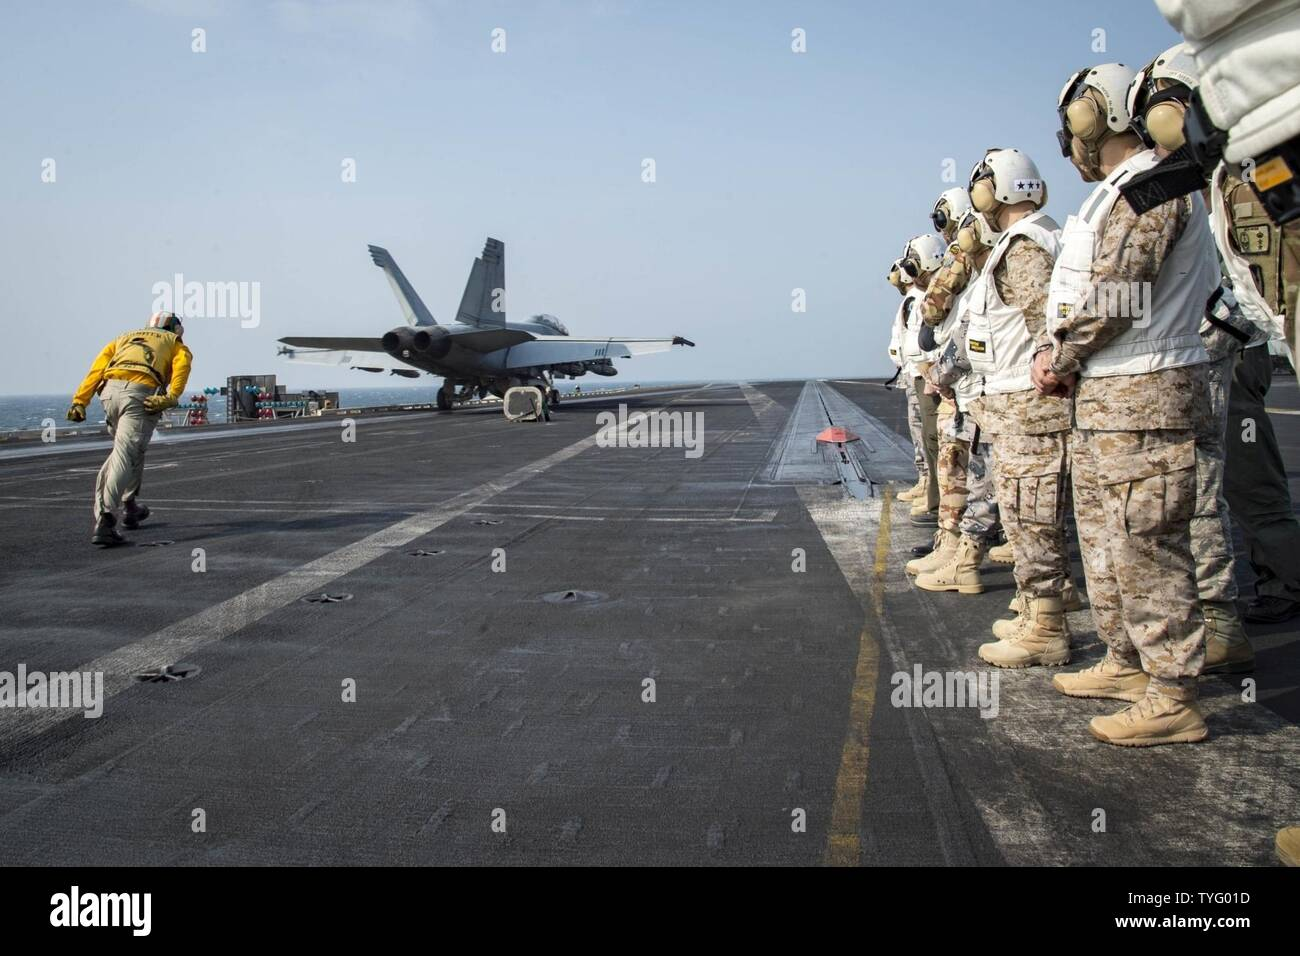 GULF (Nov. 7, 2016) Distinguished visitors observe flight operations during a theater security cooperation embark on the flight deck of the aircraft carrier USS Dwight D. Eisenhower (CVN 69) (Ike). Ike and its Carrier Strike Group are deployed in support of Operation Inherent Resolve, maritime security operations and theater security cooperation efforts in the U.S. 5th Fleet area of operations. - Stock Image